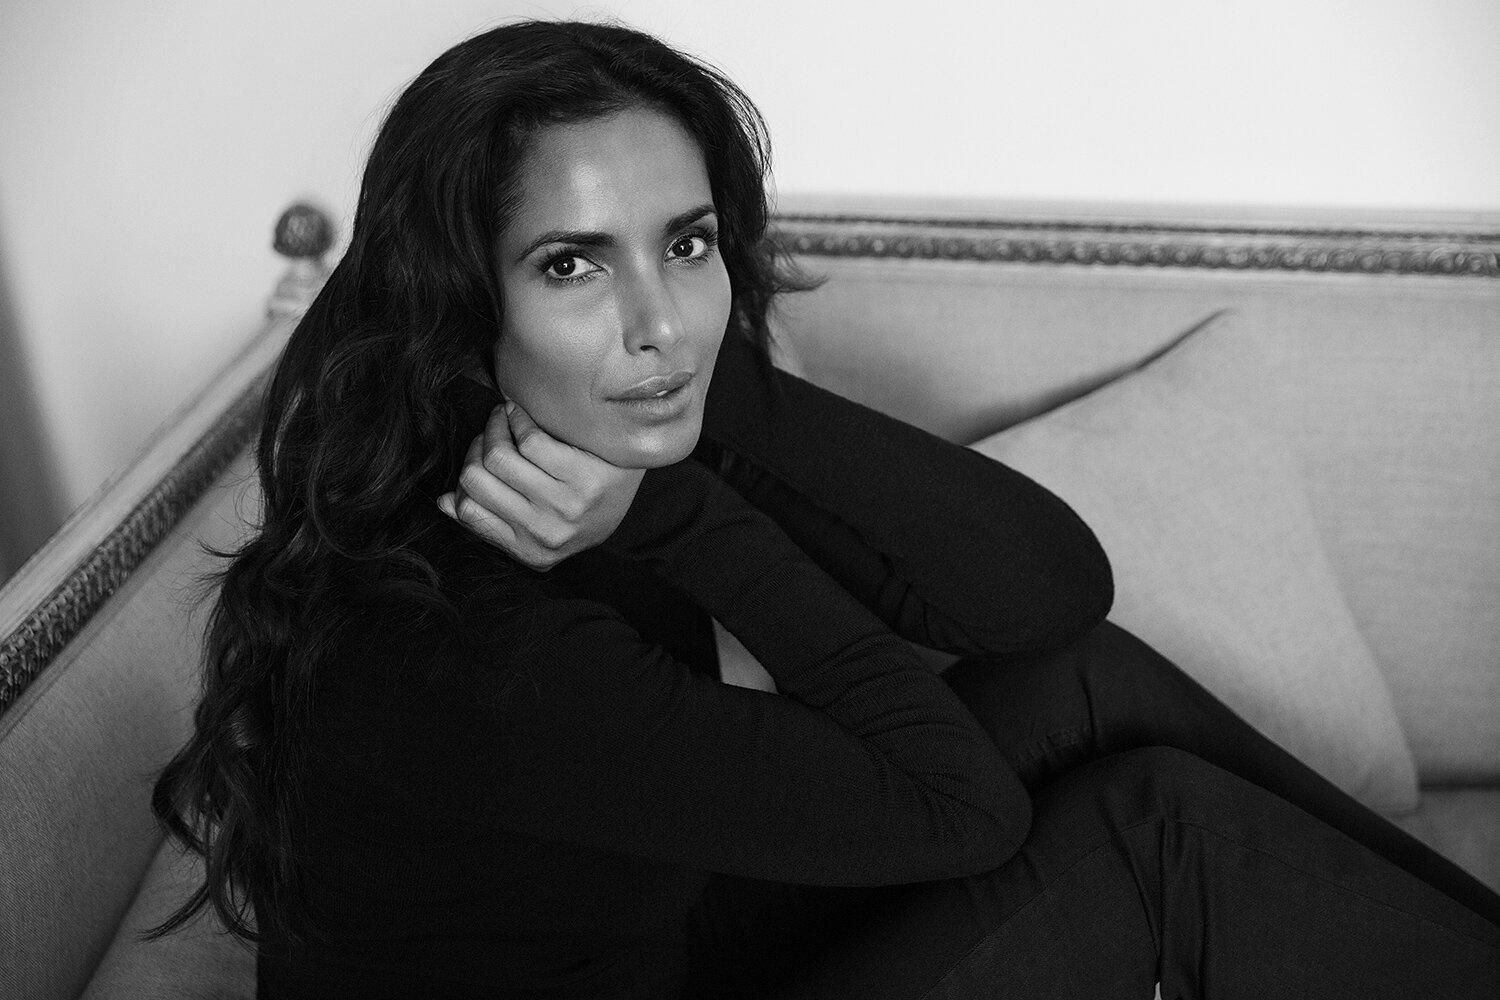 Padma Lakshmi Writes Debut Kids' Book Inspired By Cooking with Daughter: Tomatoes for Neela